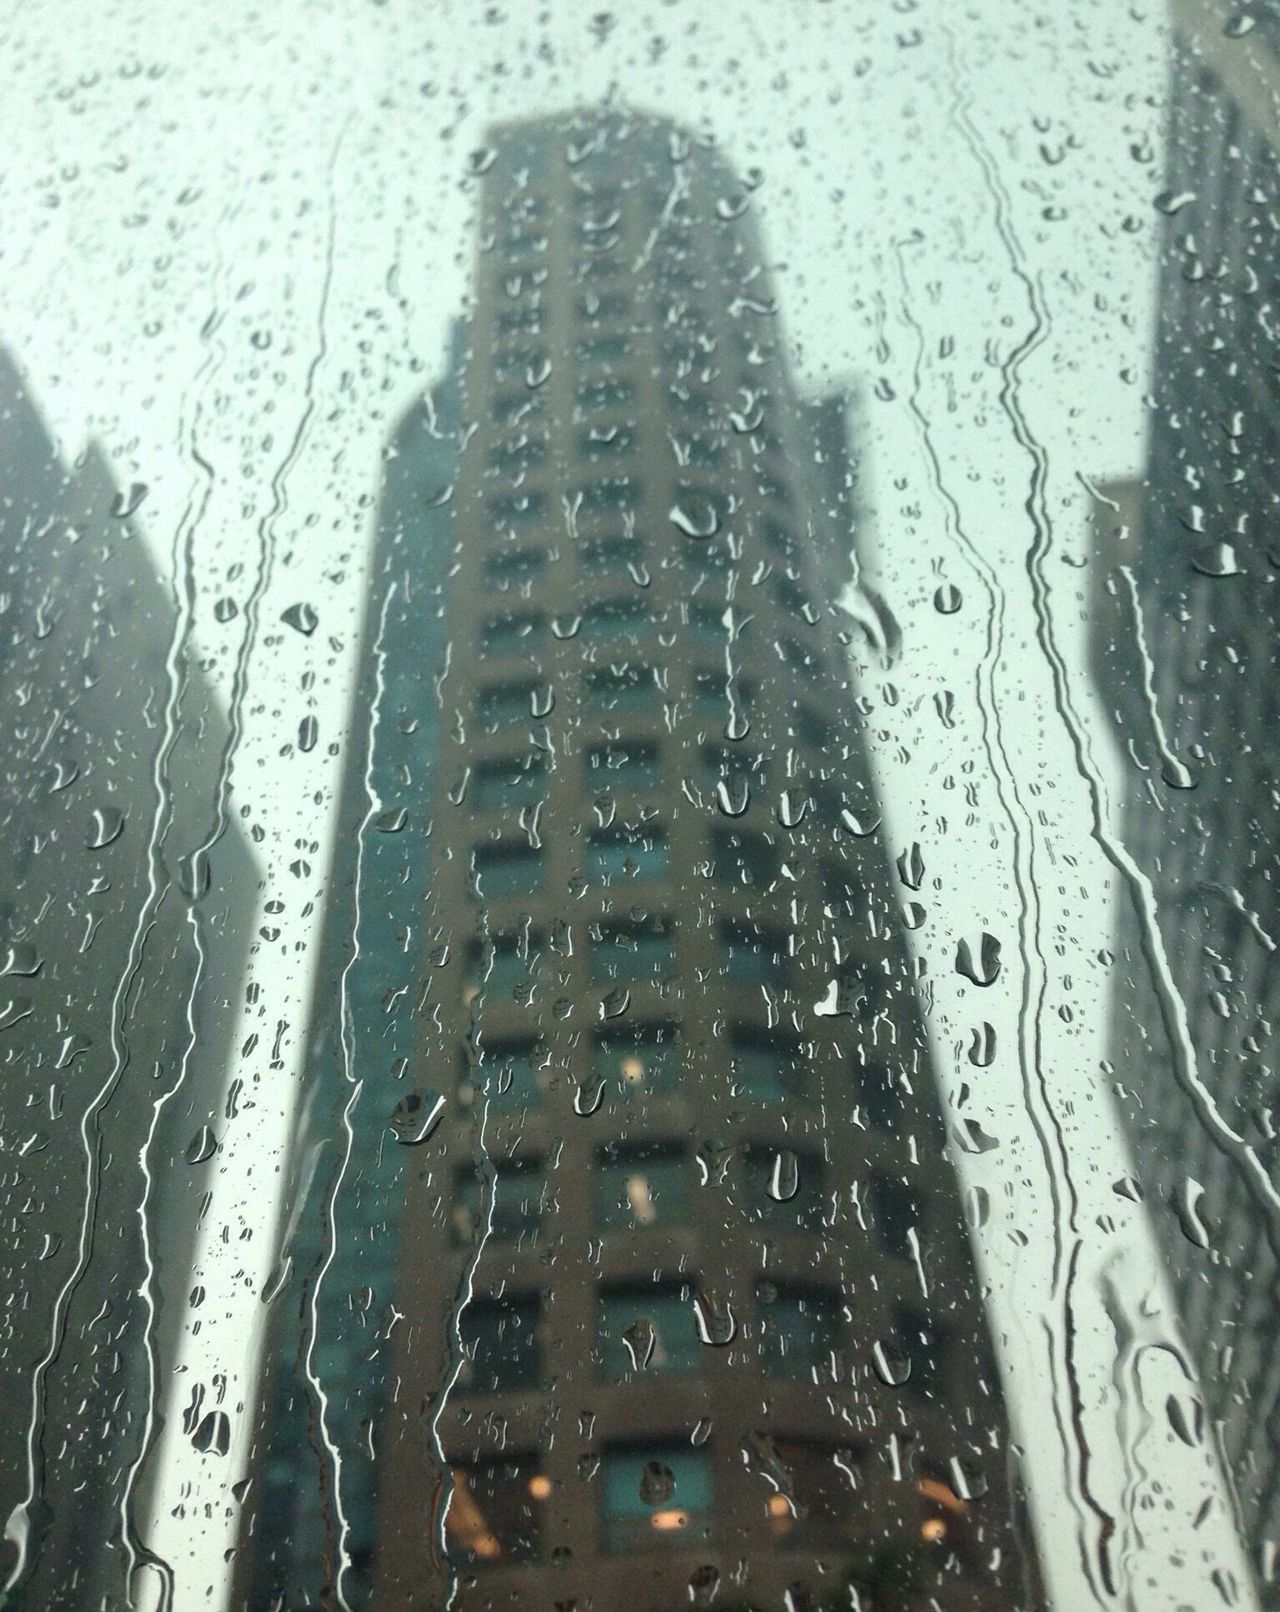 Cityscapes My Smartphone Life Rain in a big city Raindrops Water_collection Tadaa Community EyeEm Best Shots The Purist (no Edit, No Filter) Capturing Movement The Moment - 2015 EyeEm Awards Eye4photography